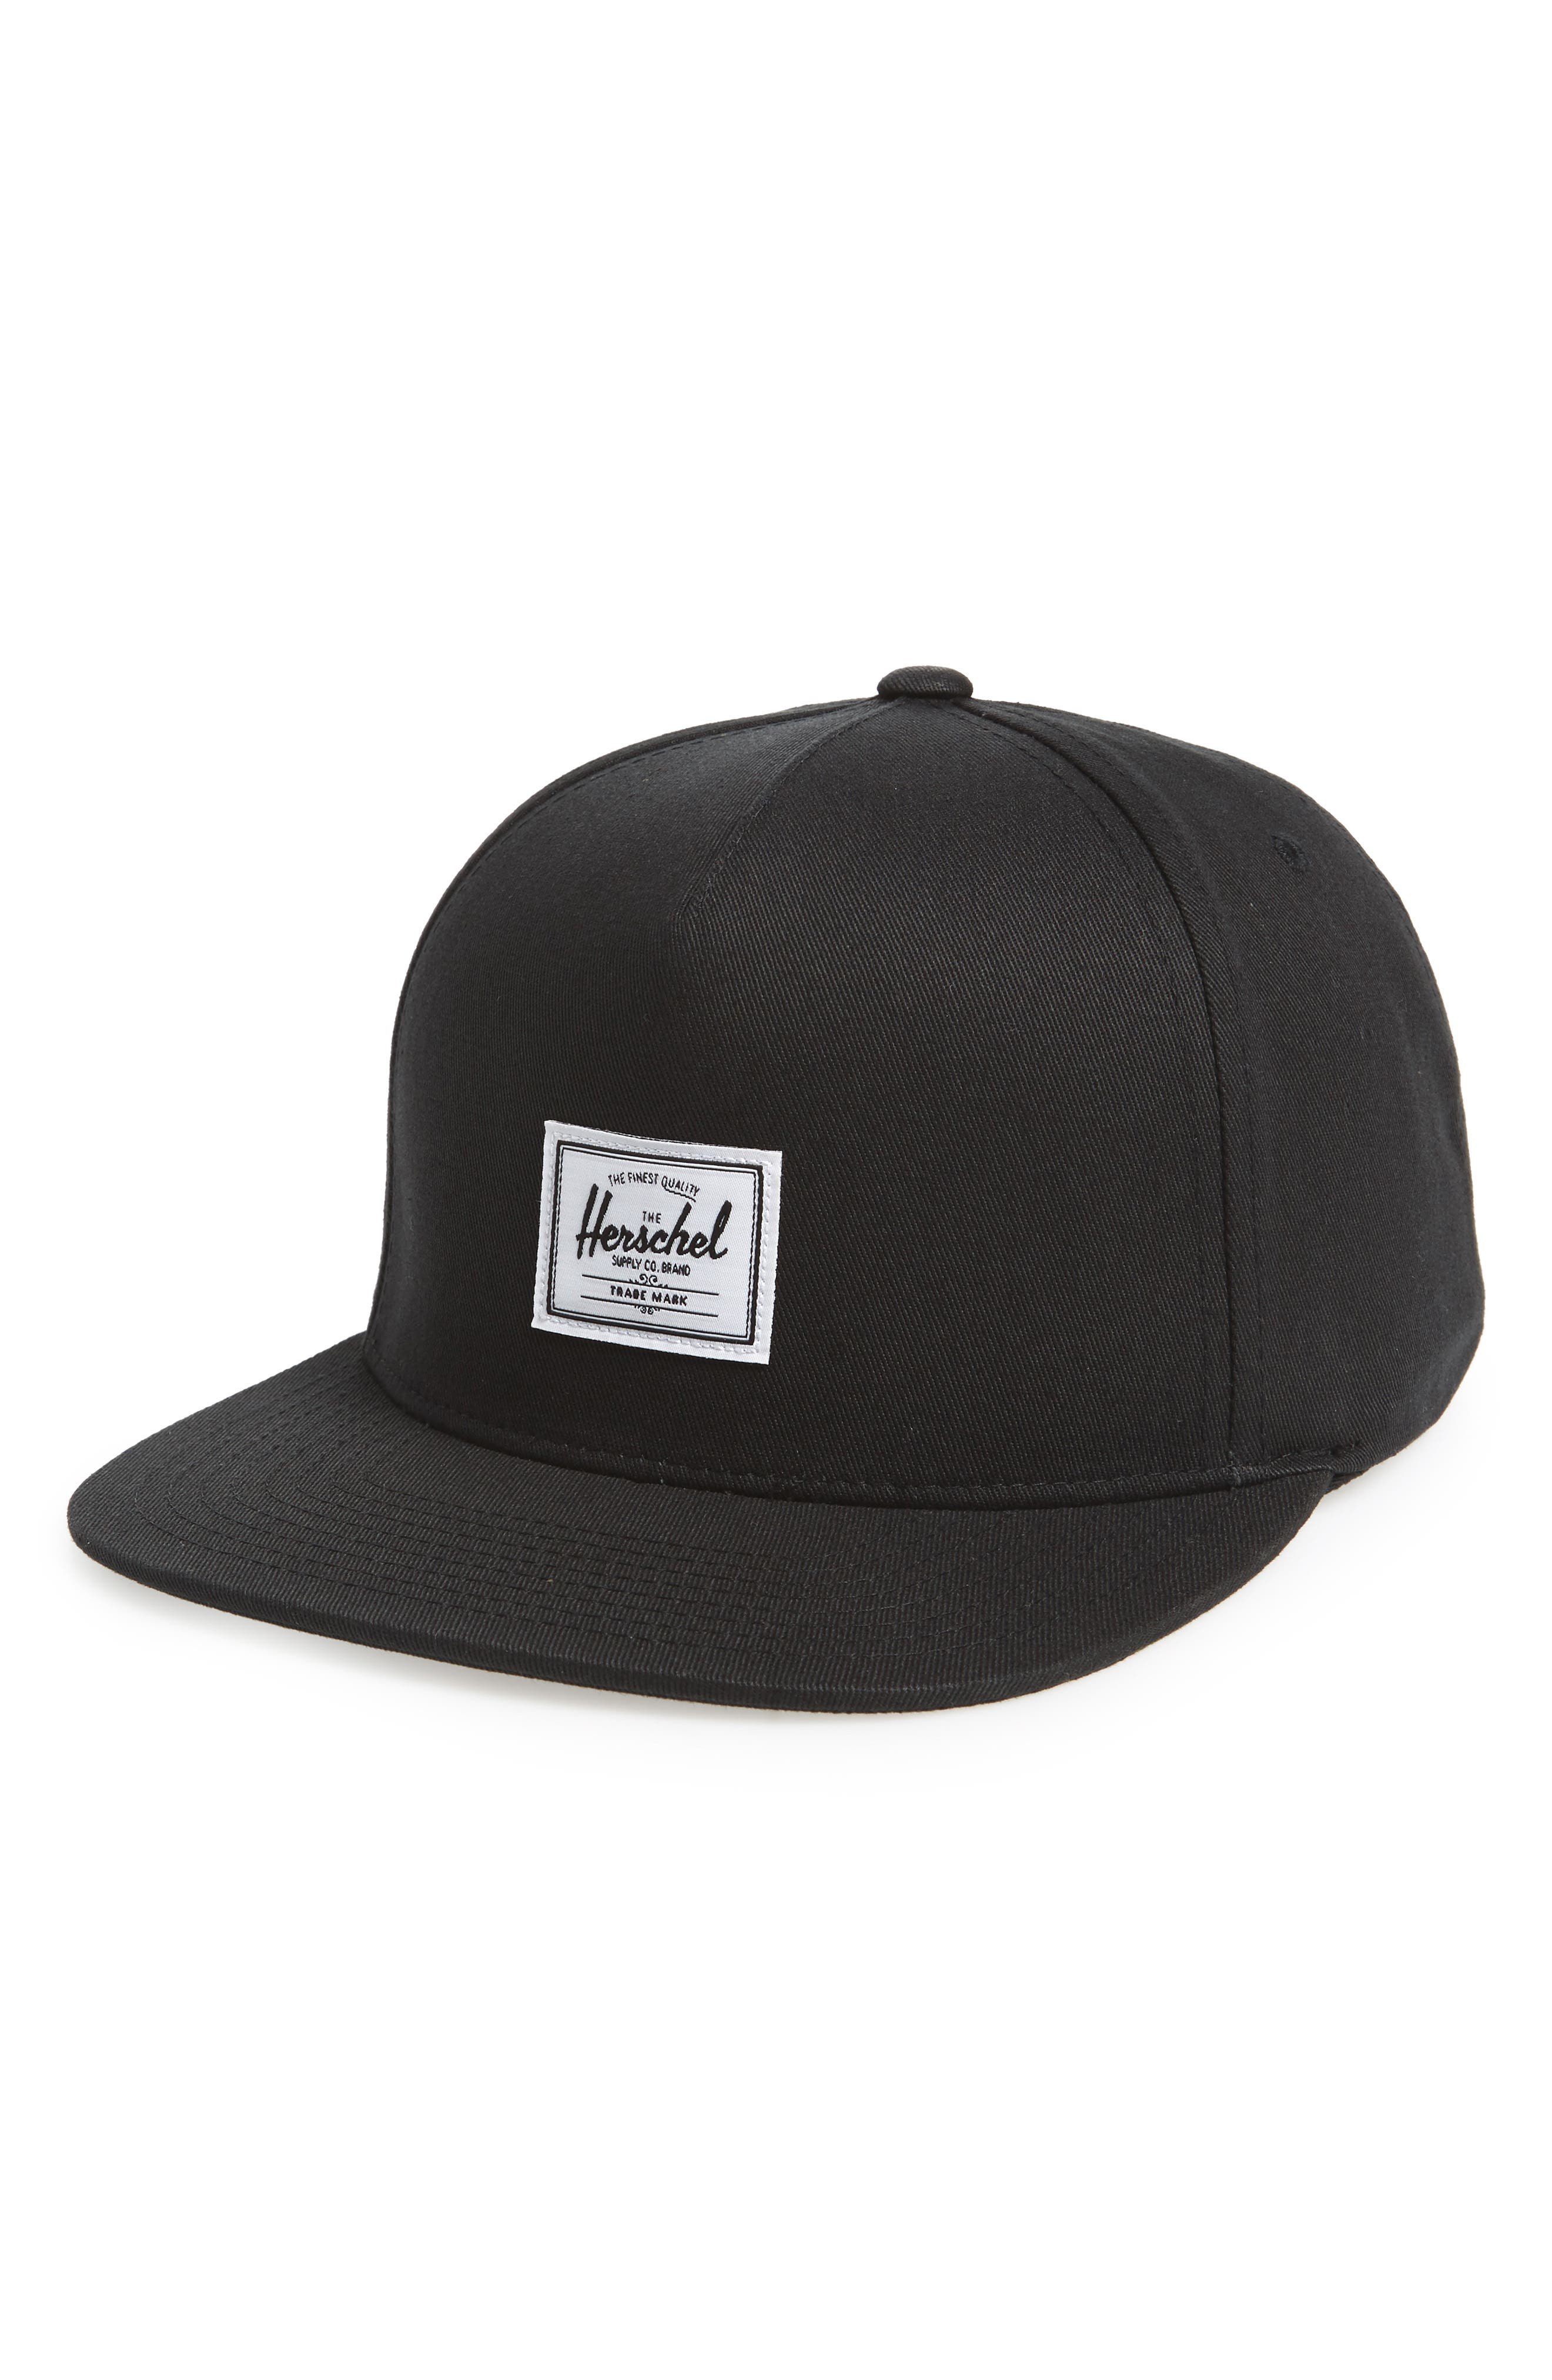 HERSCHEL SUPPLY CO. Dean Snapback Baseball Cap, Main, color, BLACK